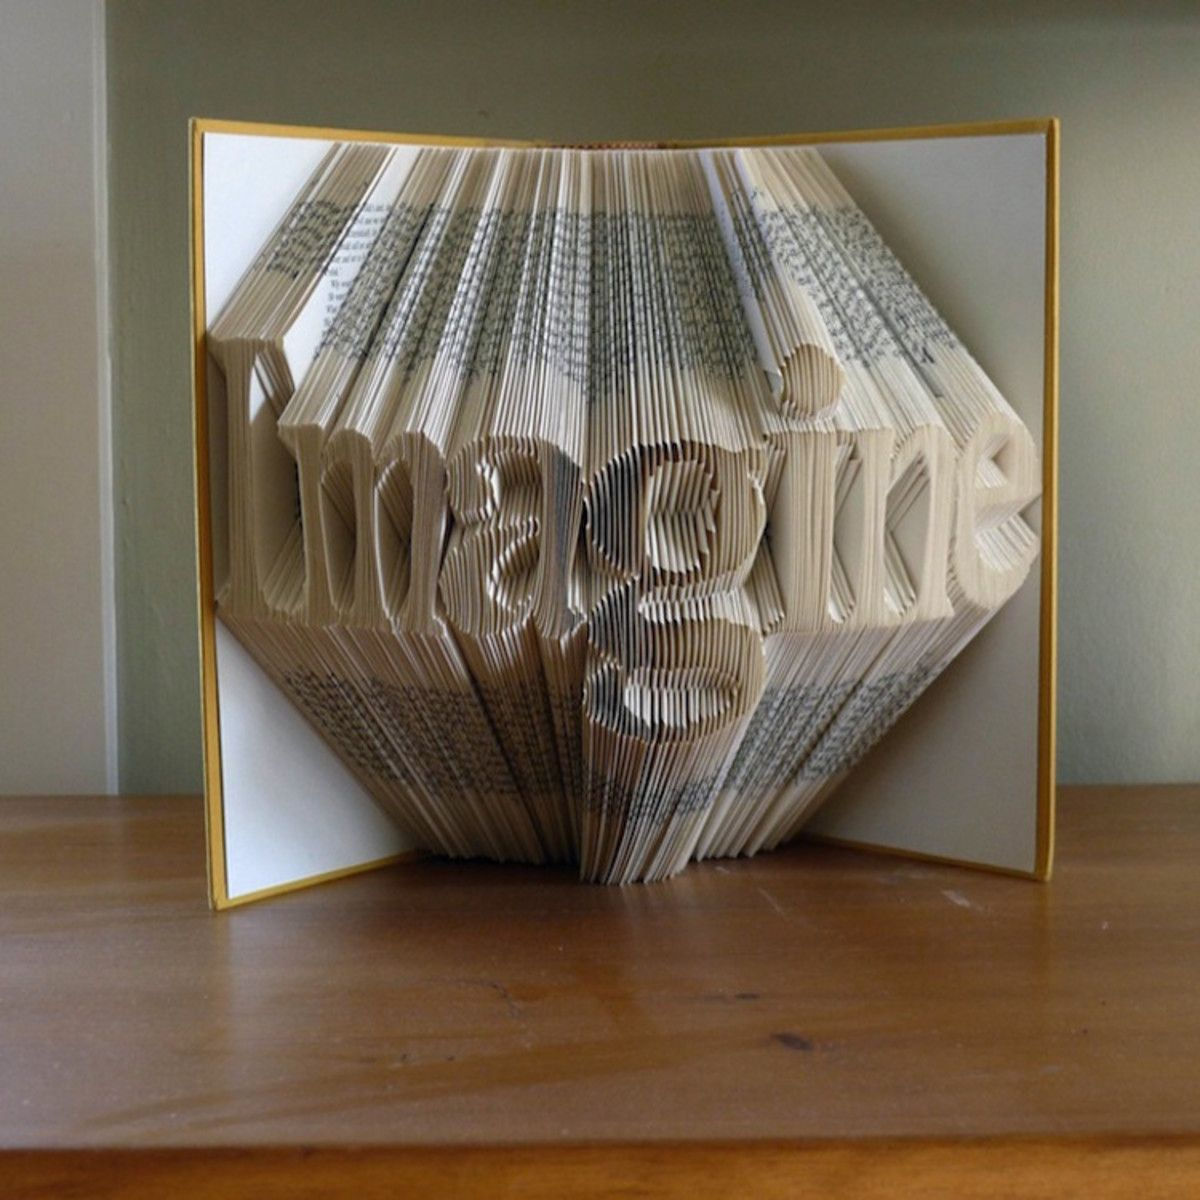 18 Unreal Artworks All Made From Dusty Old Books - UltraLinx